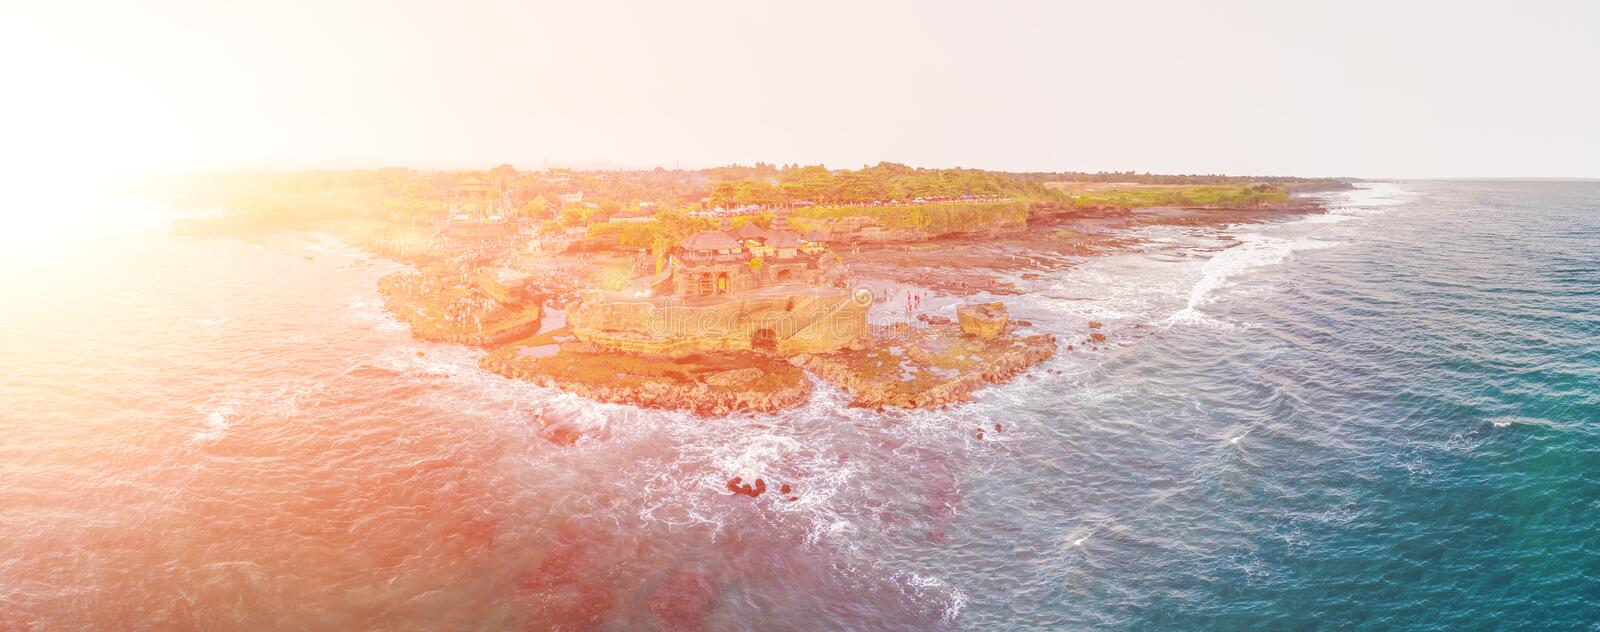 Tanah Lot - Temple in the Ocean. Bali, Indonesia. Photo from the drone. Banner, Long format royalty free stock photos